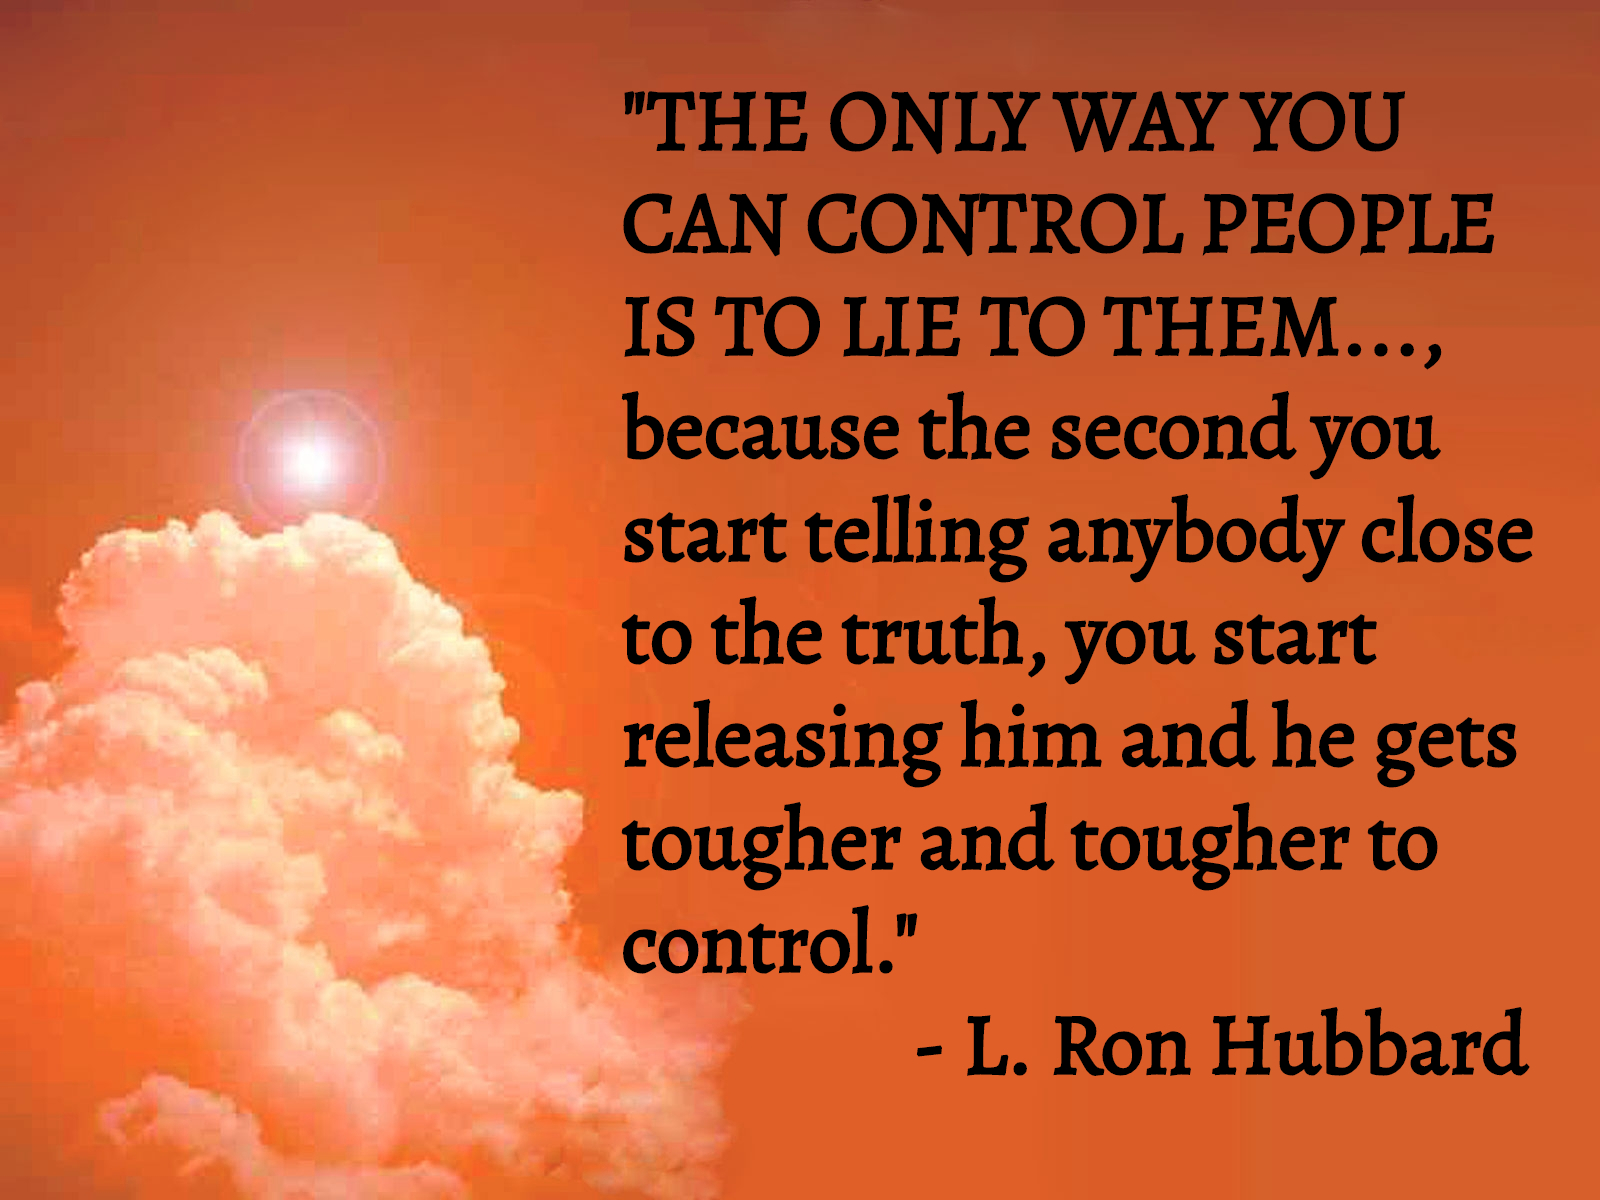 """THE ONLY WAY YOU CAN CONTROL PEOPLE IS TO LIE TO THEM..., because the second you start telling anybody close to the truth, you start _ releasing him and he gets tougher and tougher to control."" ' — L. https://inspirational.ly"